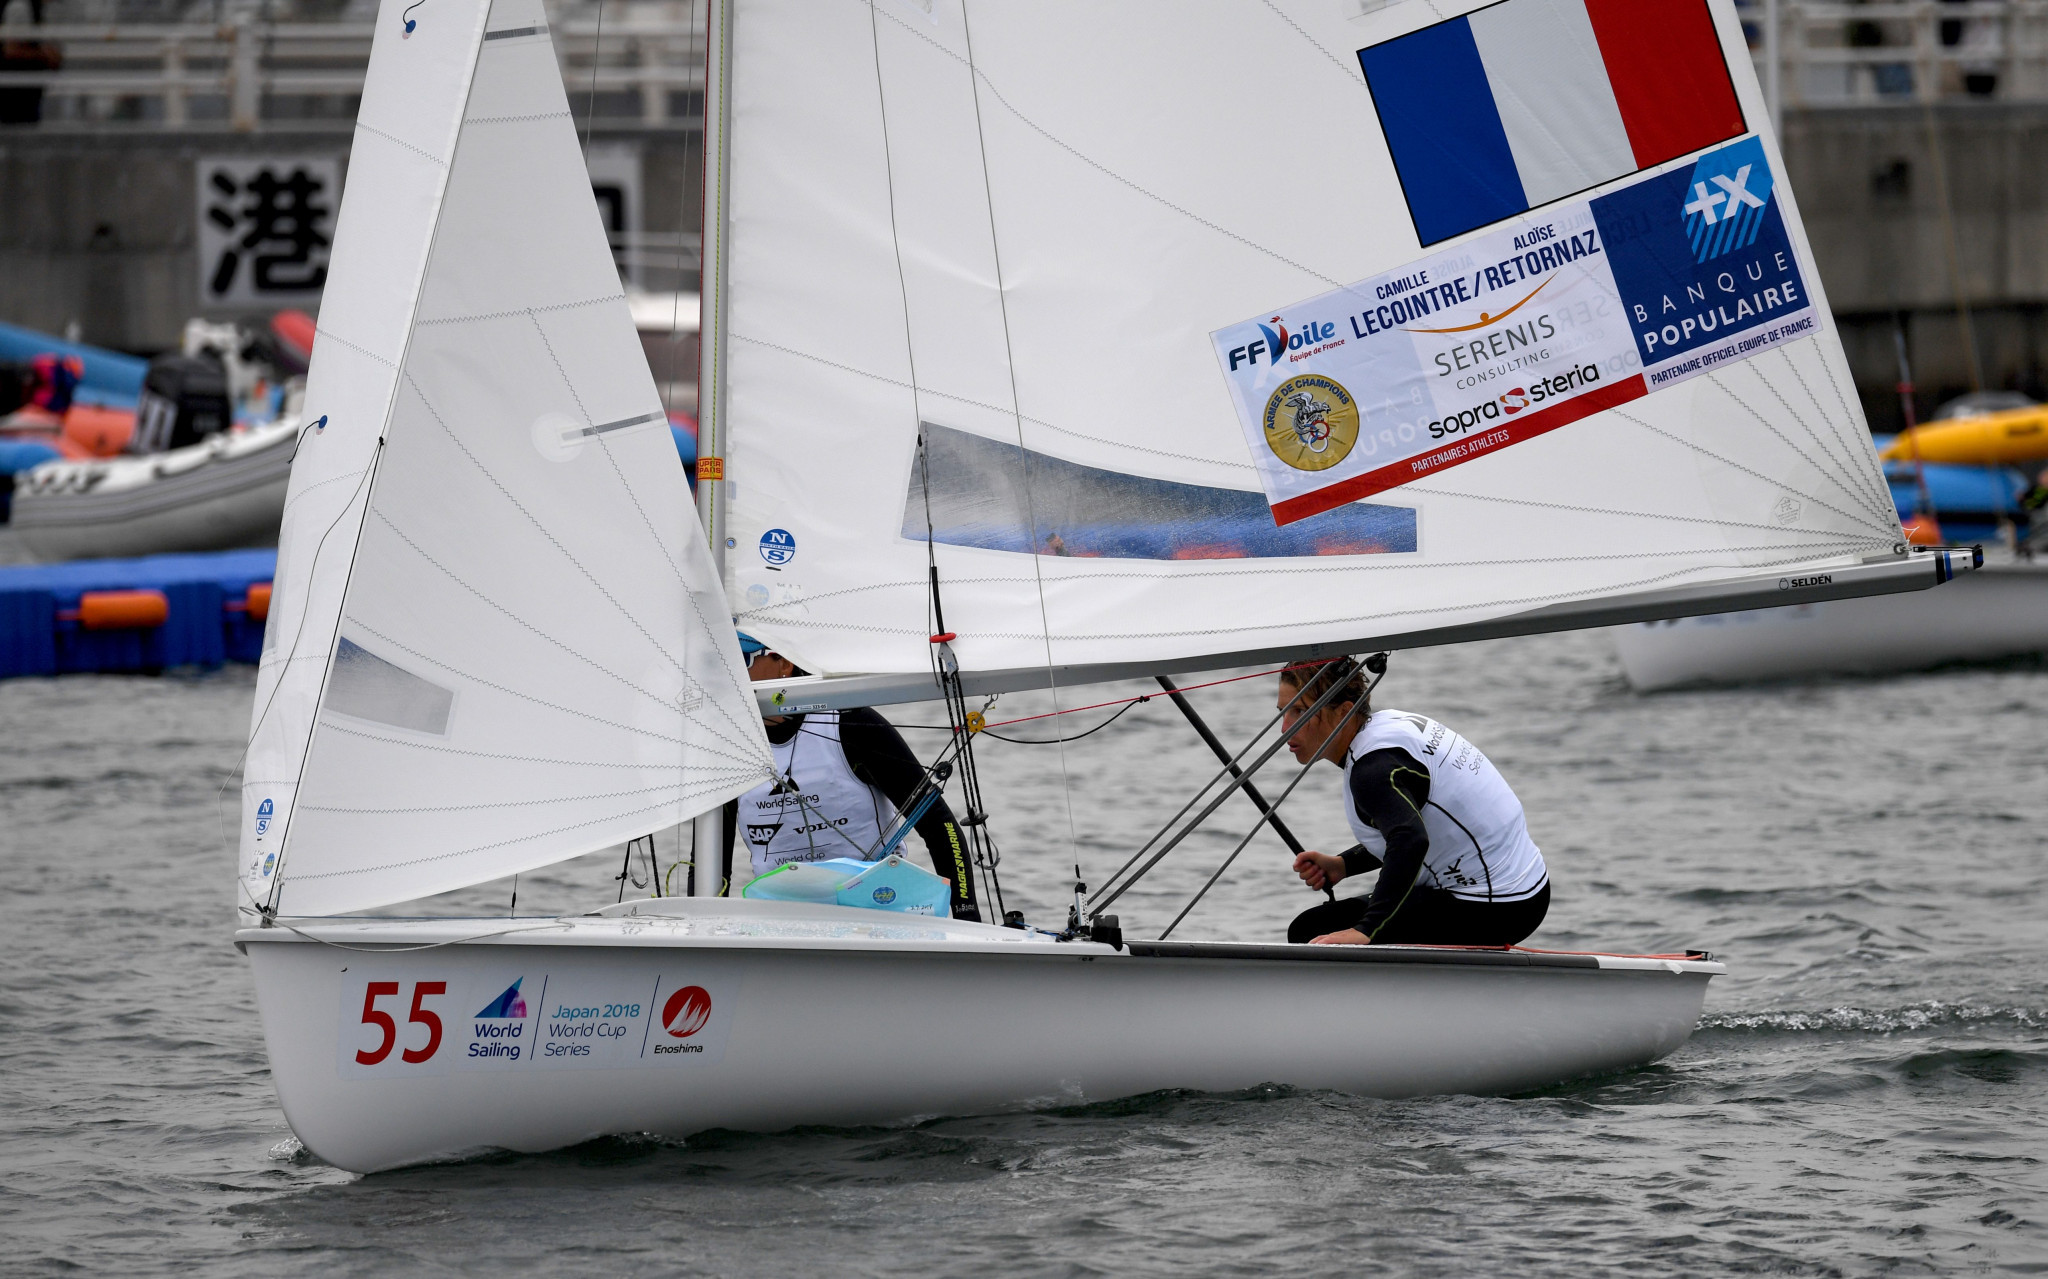 France's Camille Lecointre and Aloise Retornaz will be among the favourites in the women's event ©Getty Images